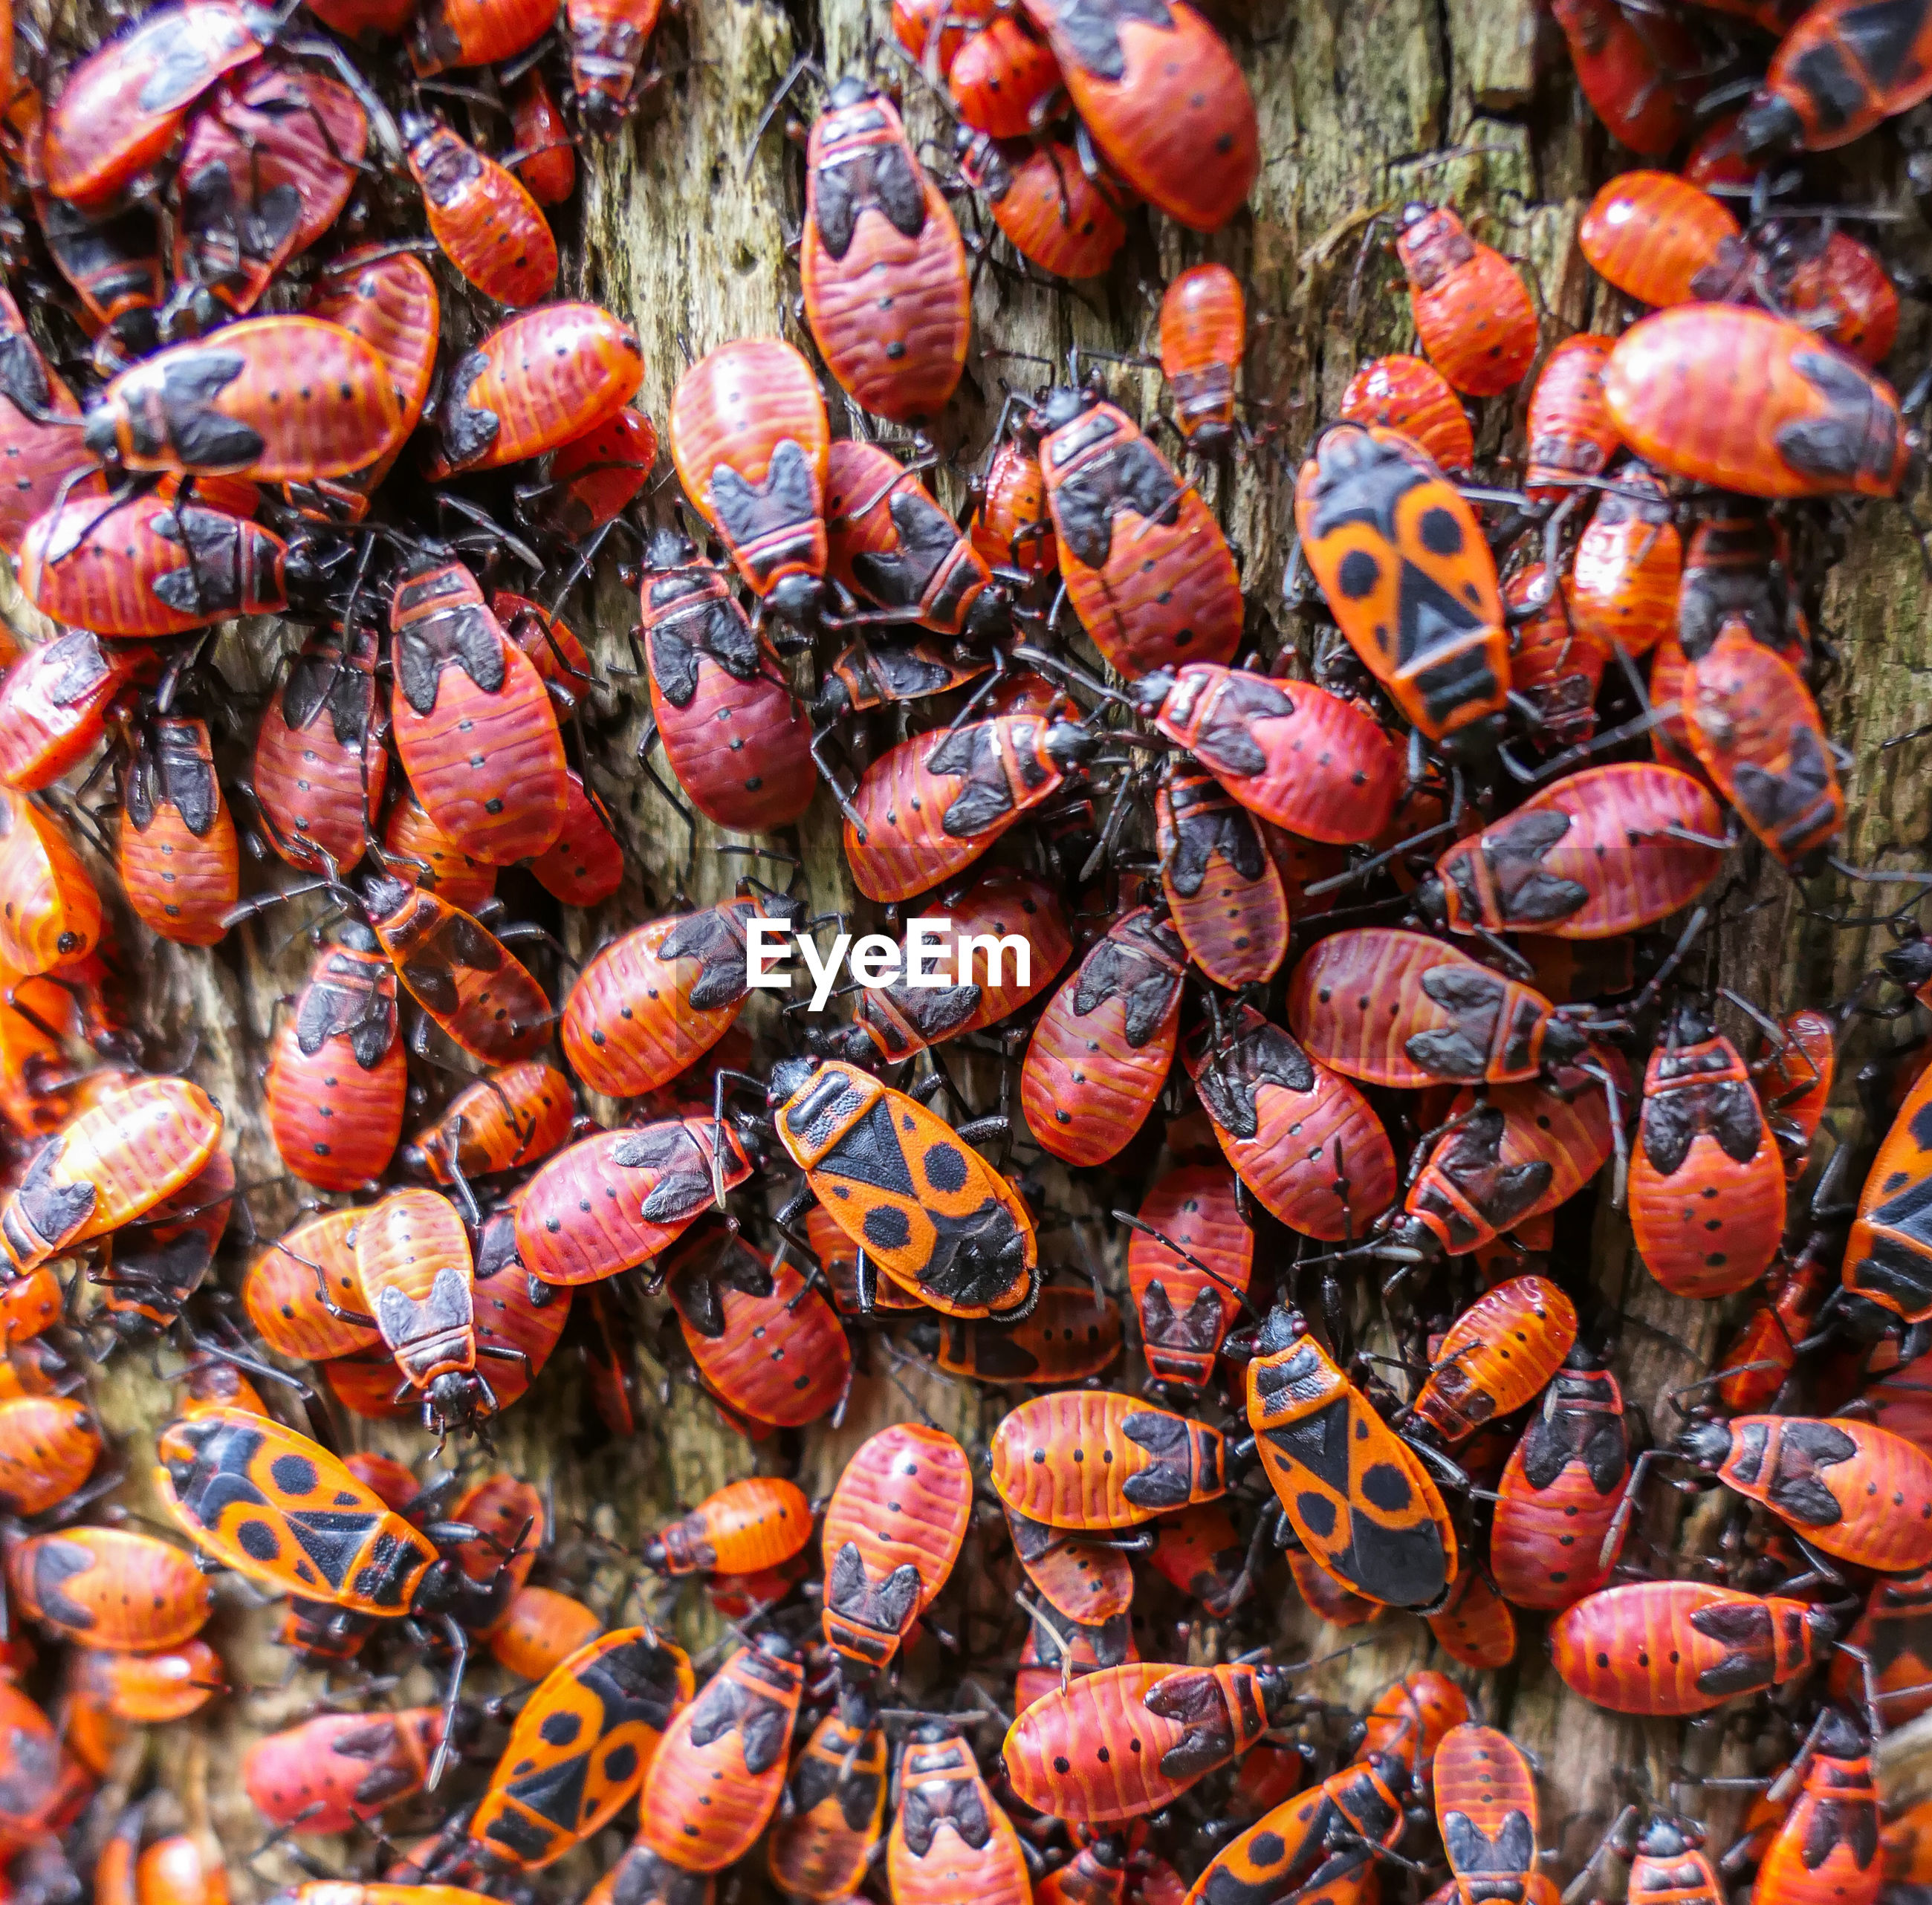 Red bugs eating old ill tree in summer